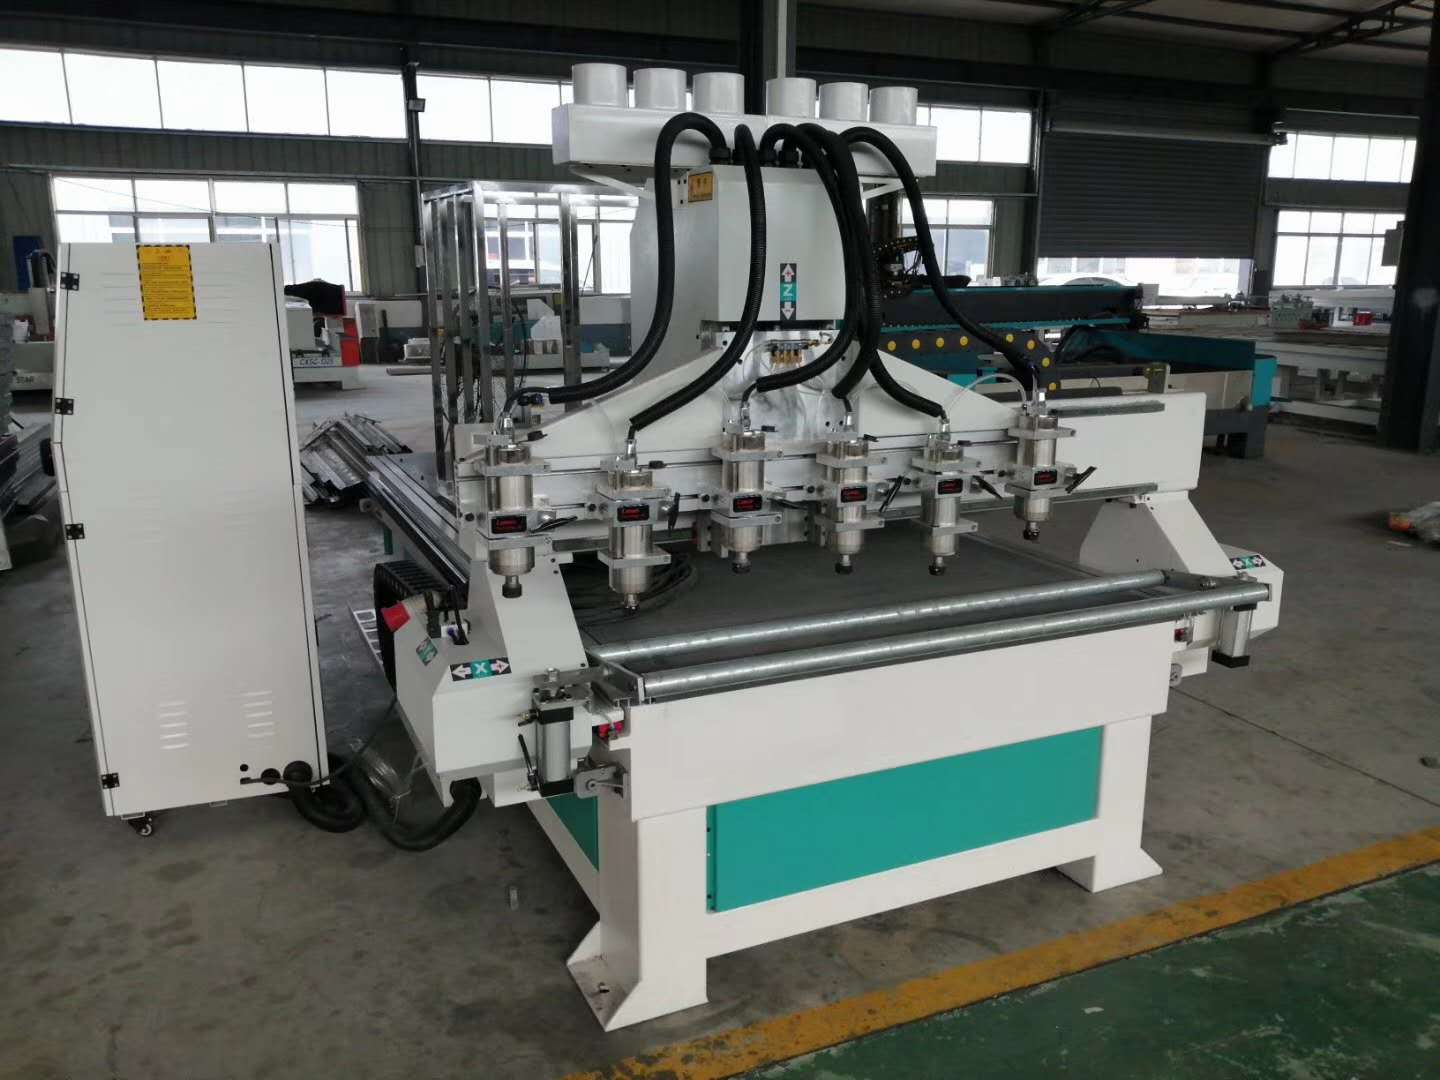 multi spindles cnc wood router machine with 2,2kw spindles